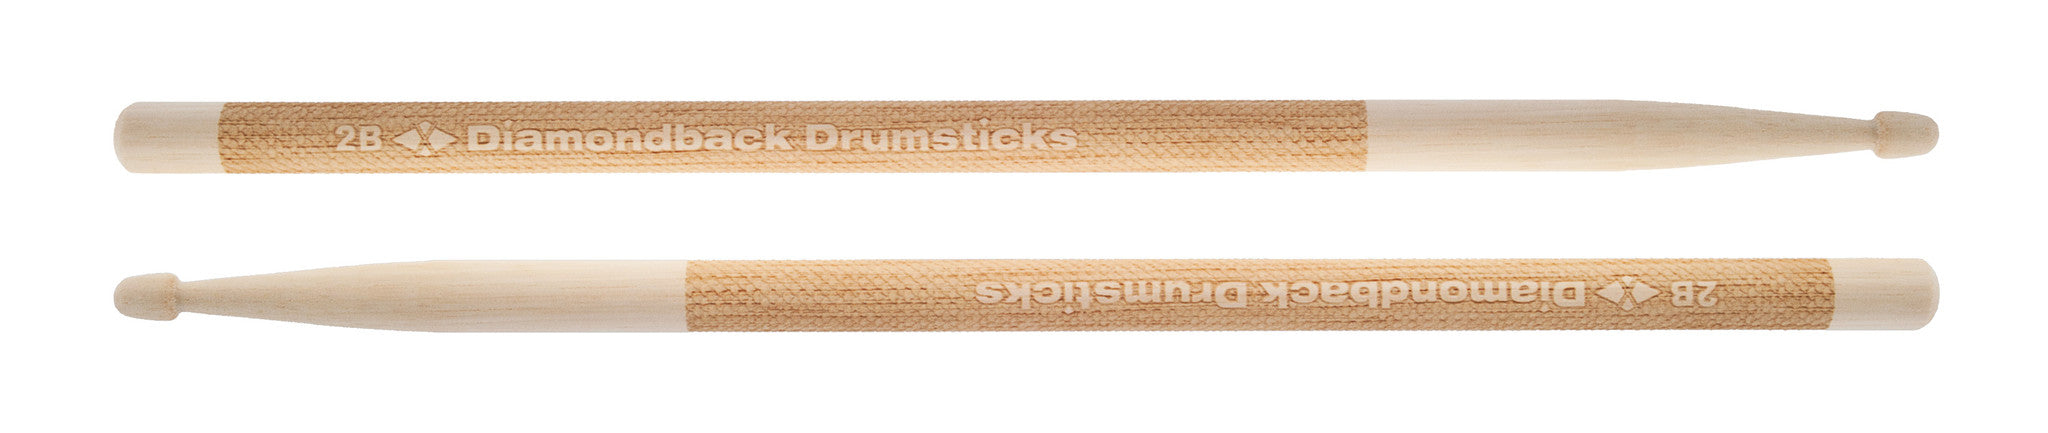 Diamond Laser Engraved 2B Wood Tip Drumsticks - Bananas at Large - 2